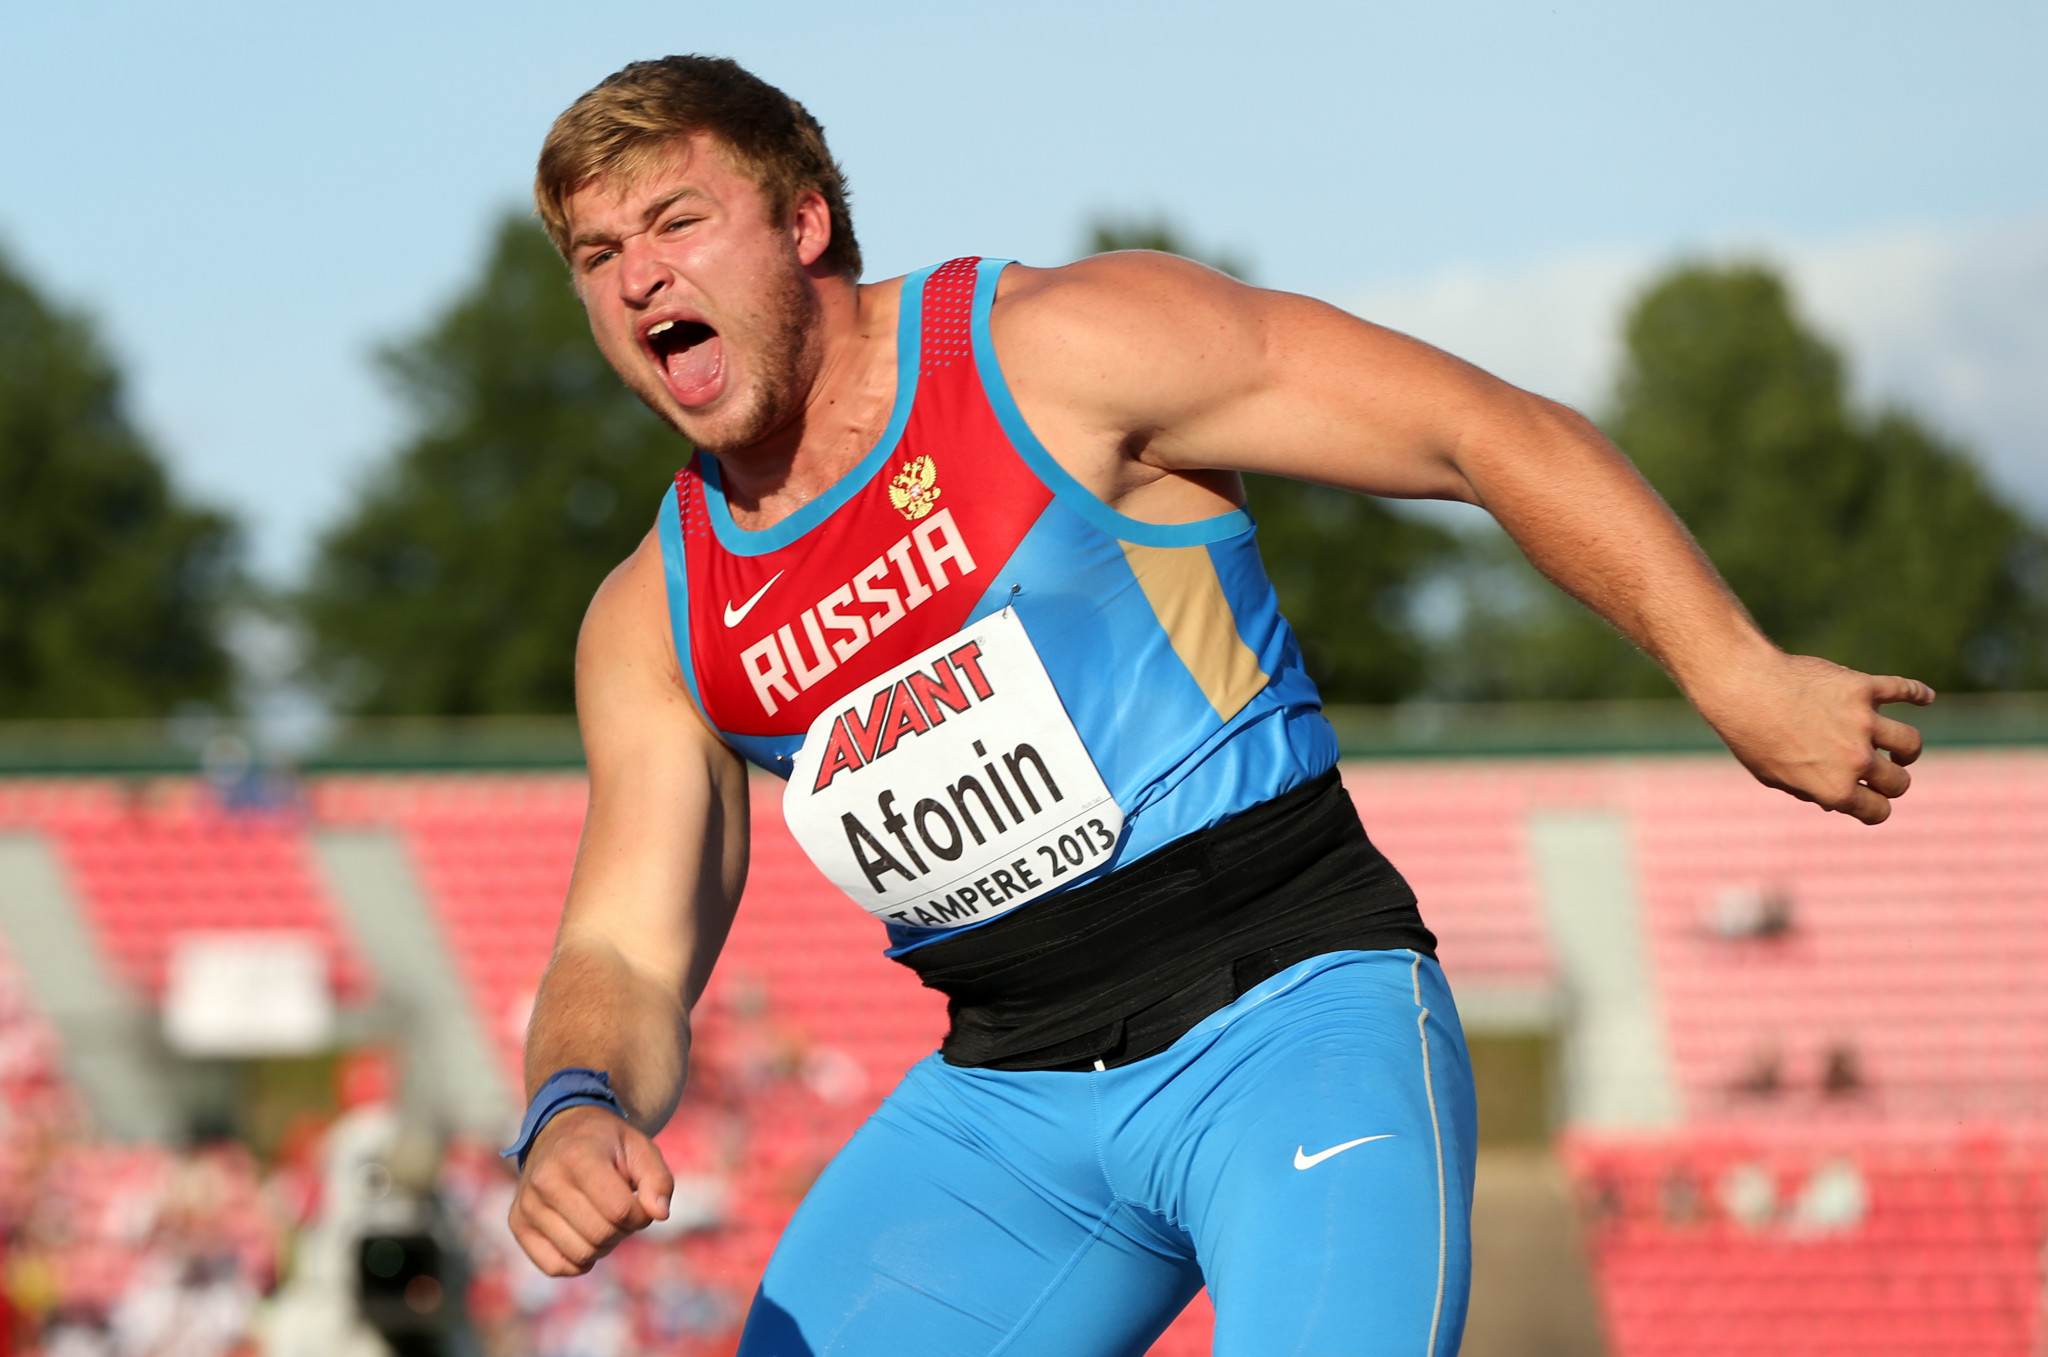 Maksim Afonin was granted ANA status by the IAAF yesterday ©Getty Images